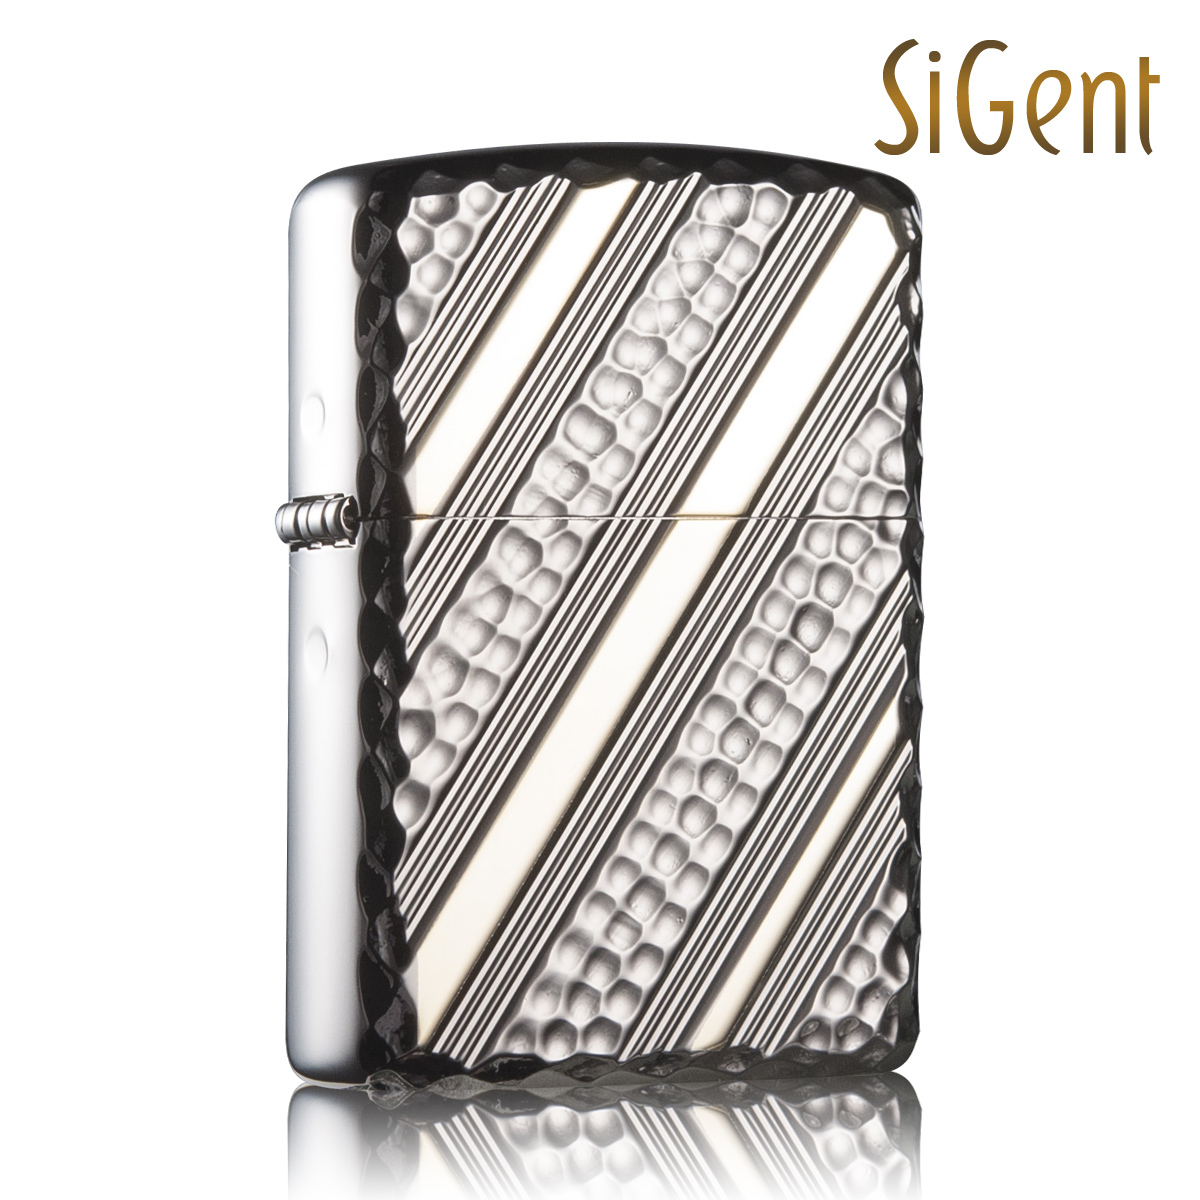 Genuine zippo lighters zippo lighters genuine creative windproof lighter end of the year to promote gift armor twilled